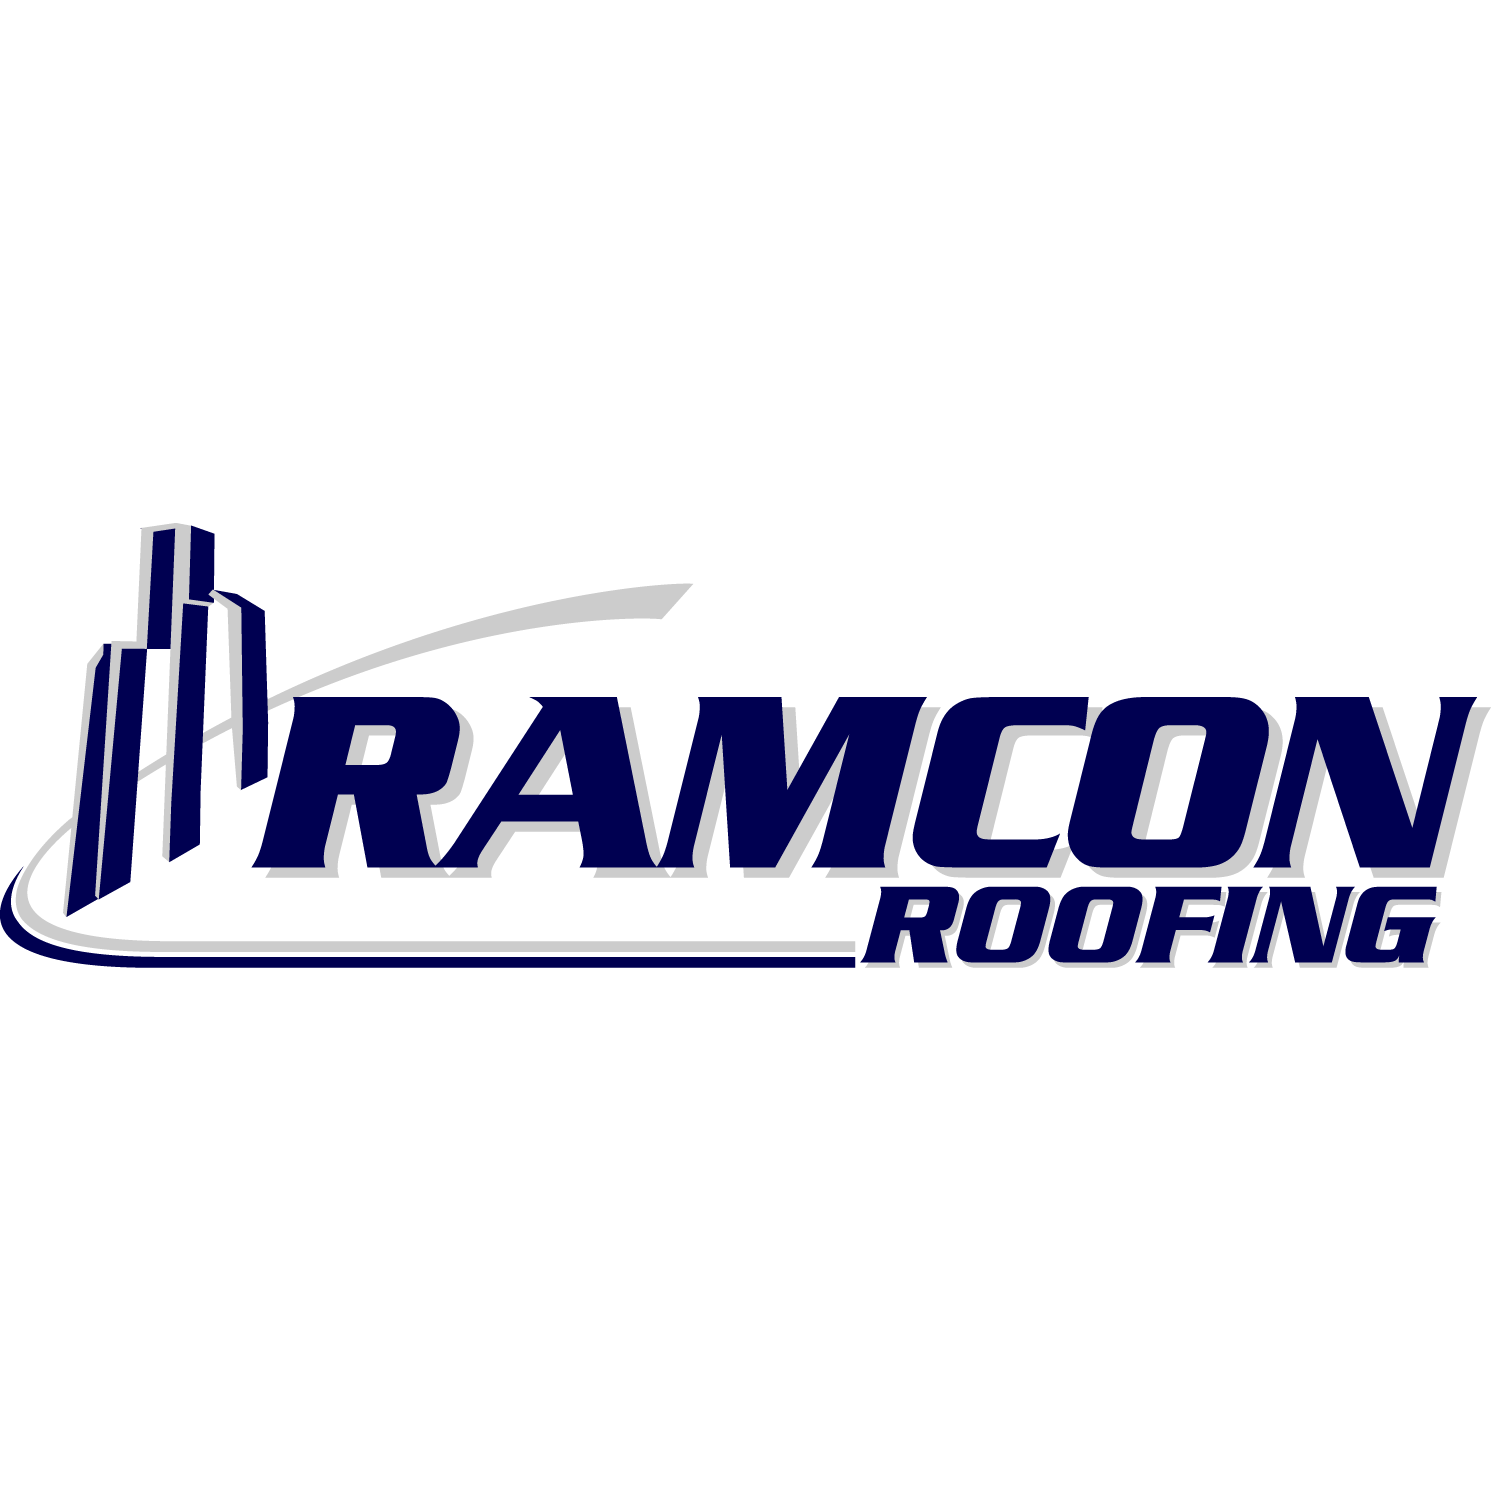 RAMCON Roofing - Tampa, FL - Roofing Contractors